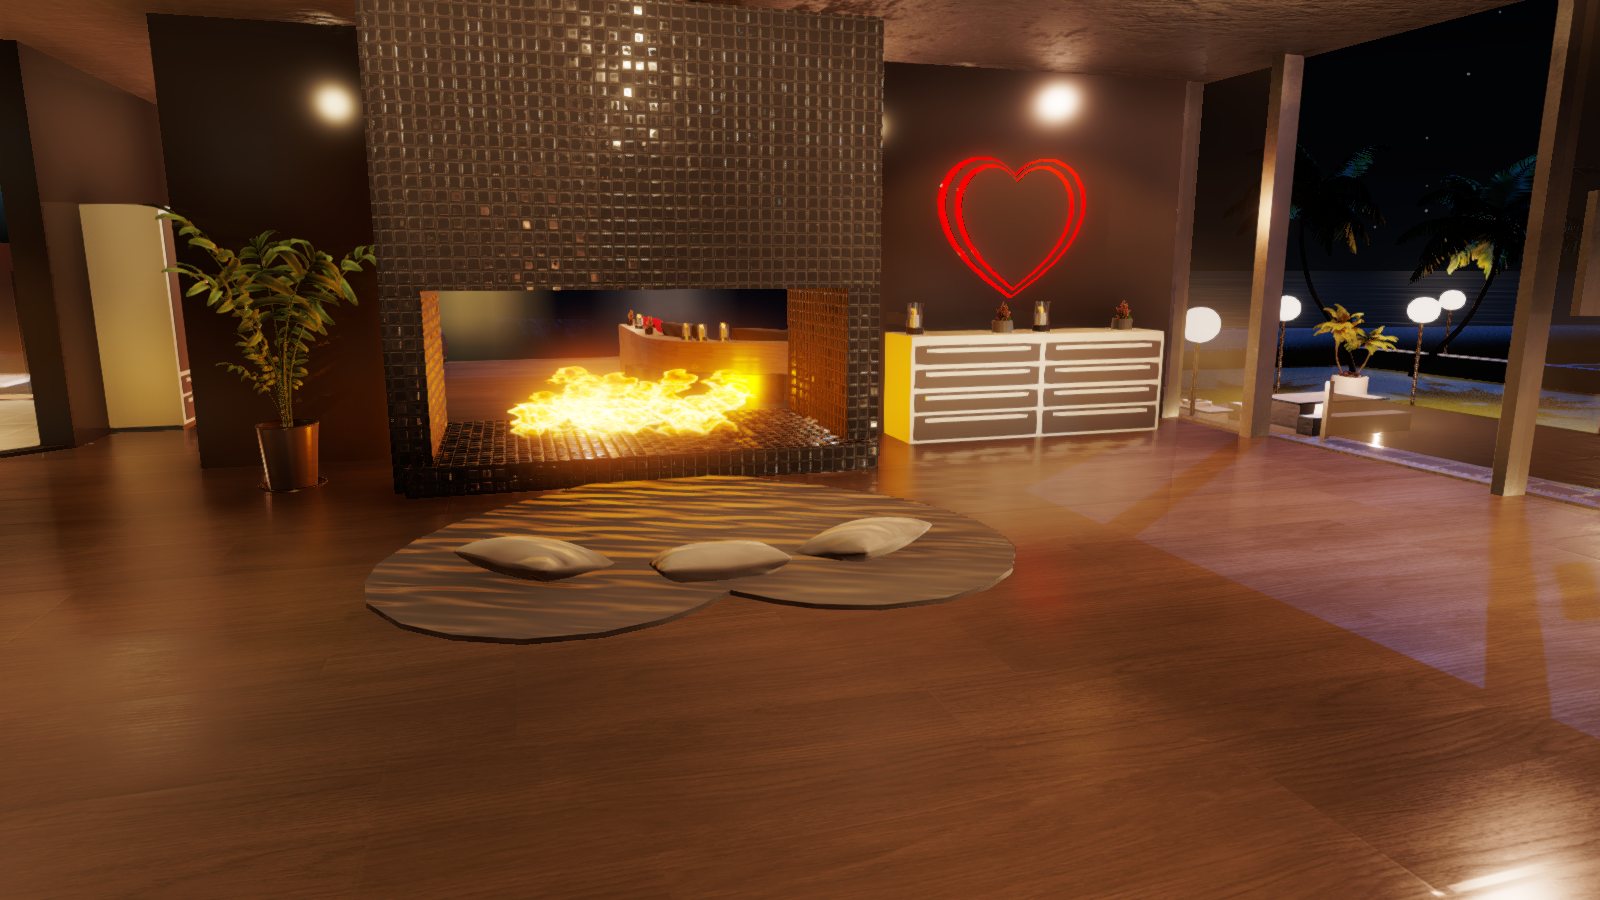 Fireplace, with bed pose in front